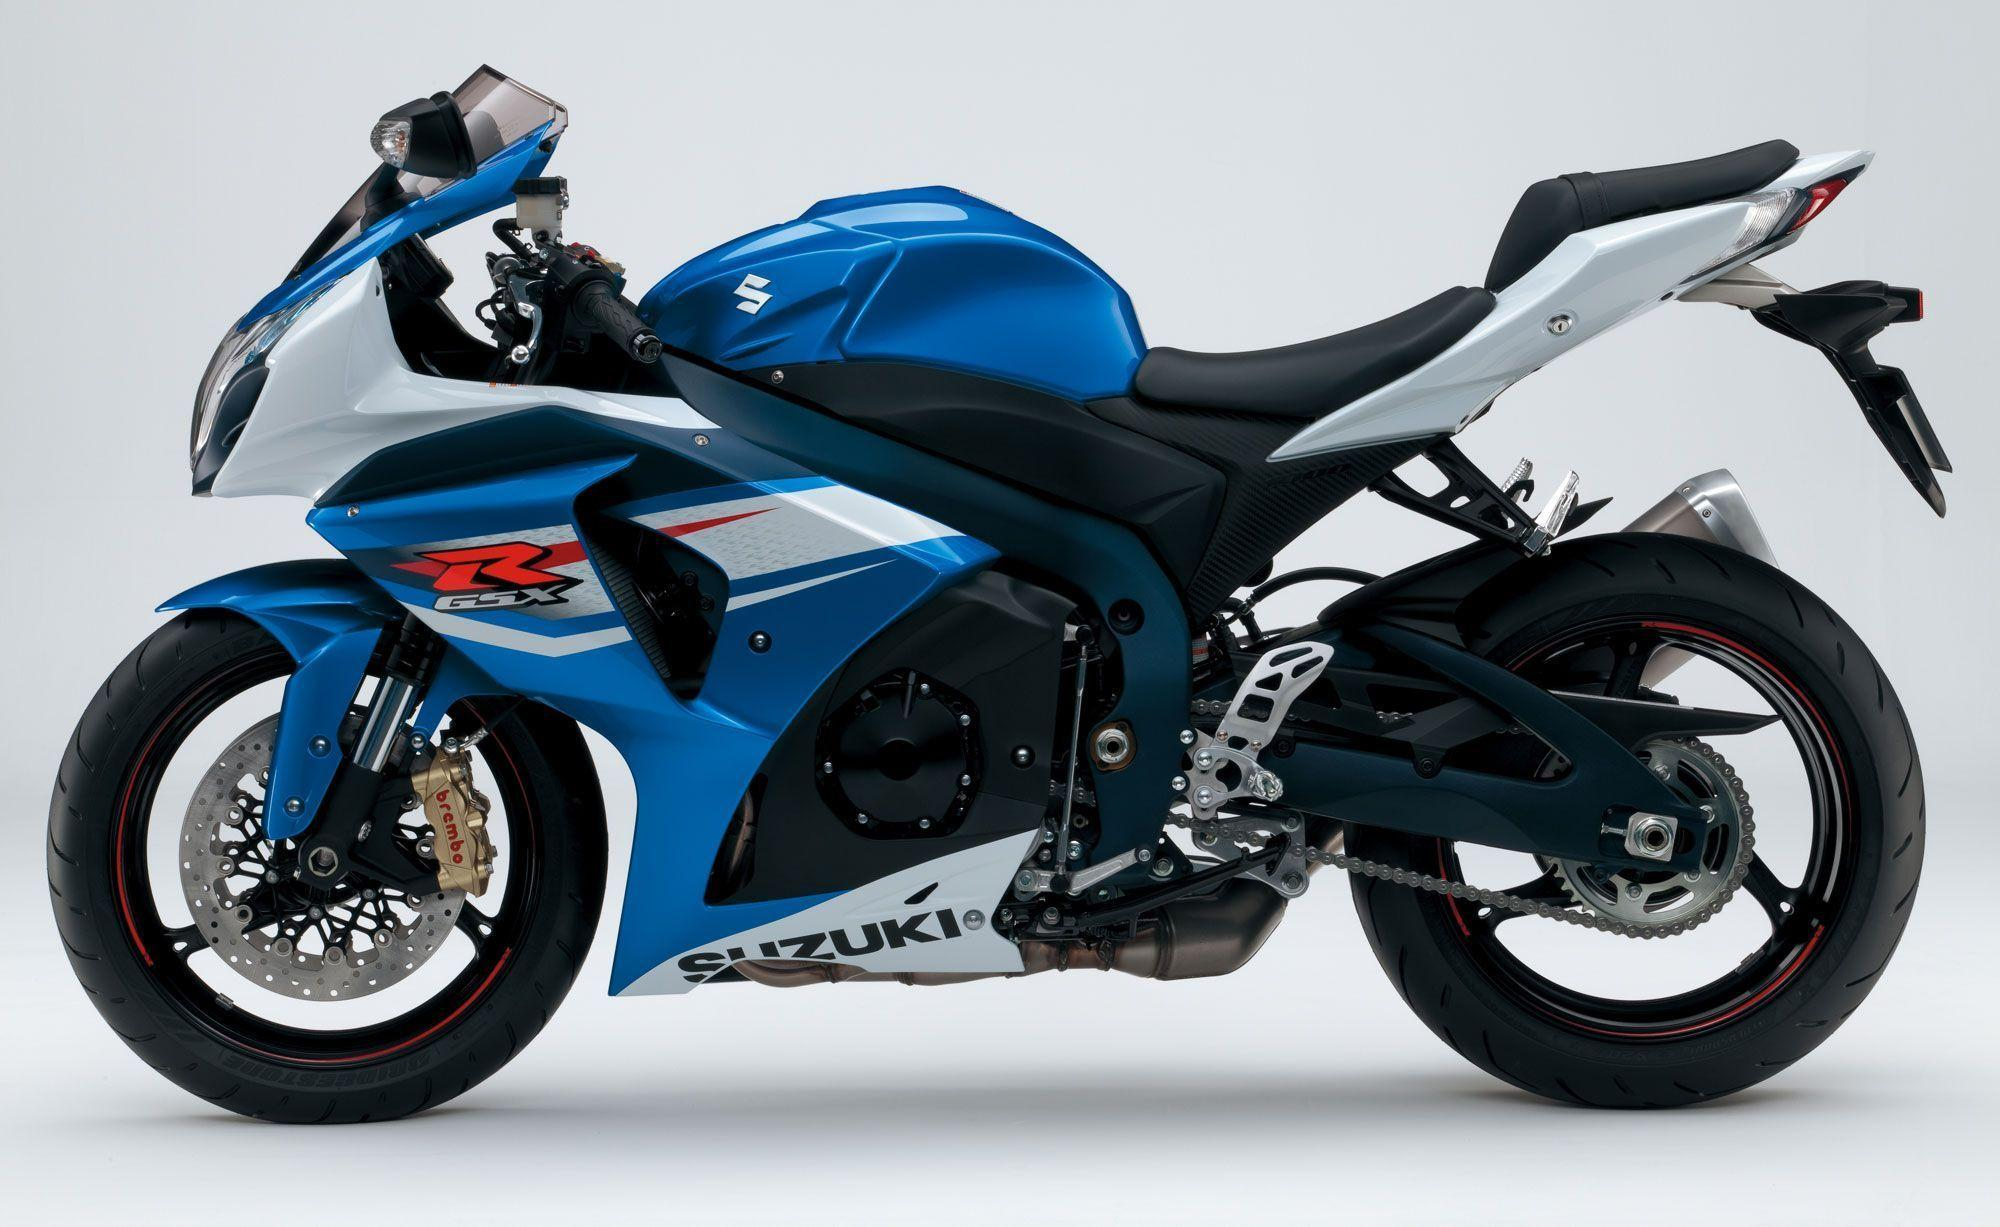 Suzuki Four Wheelers >> Suzuki GSXR 1000 2015 Wallpapers - Wallpaper Cave